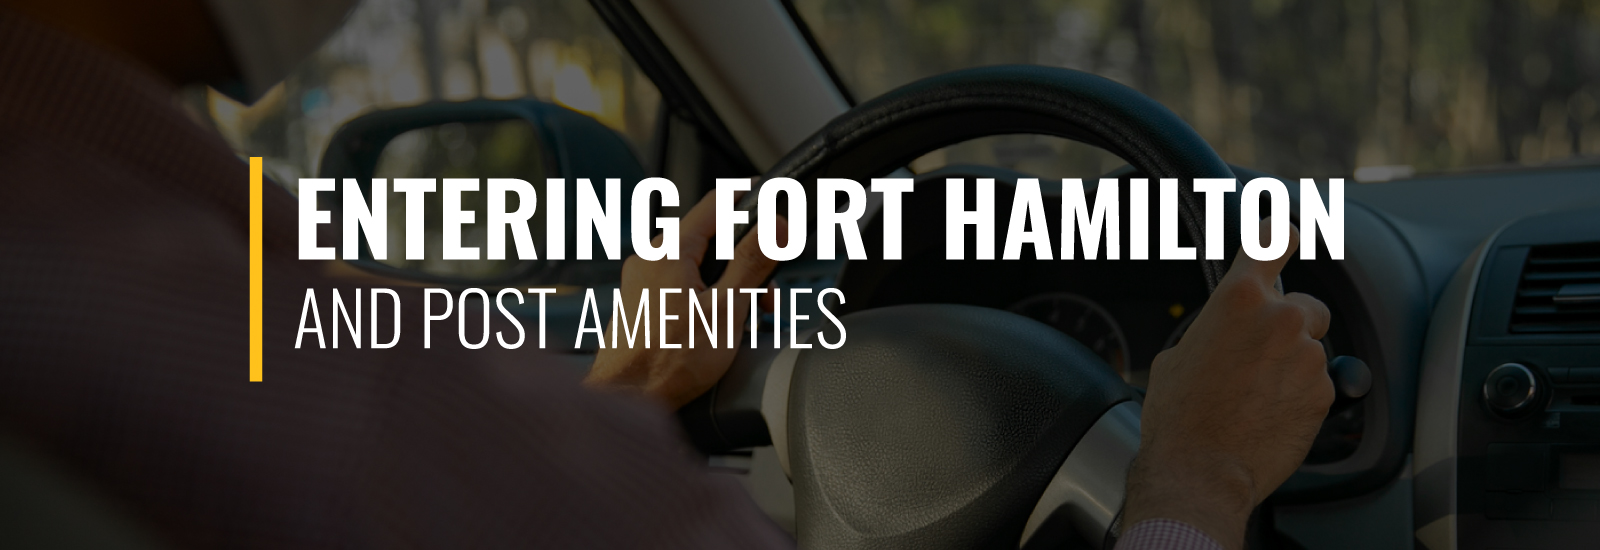 Entering Fort Hamilton and Post Amenities